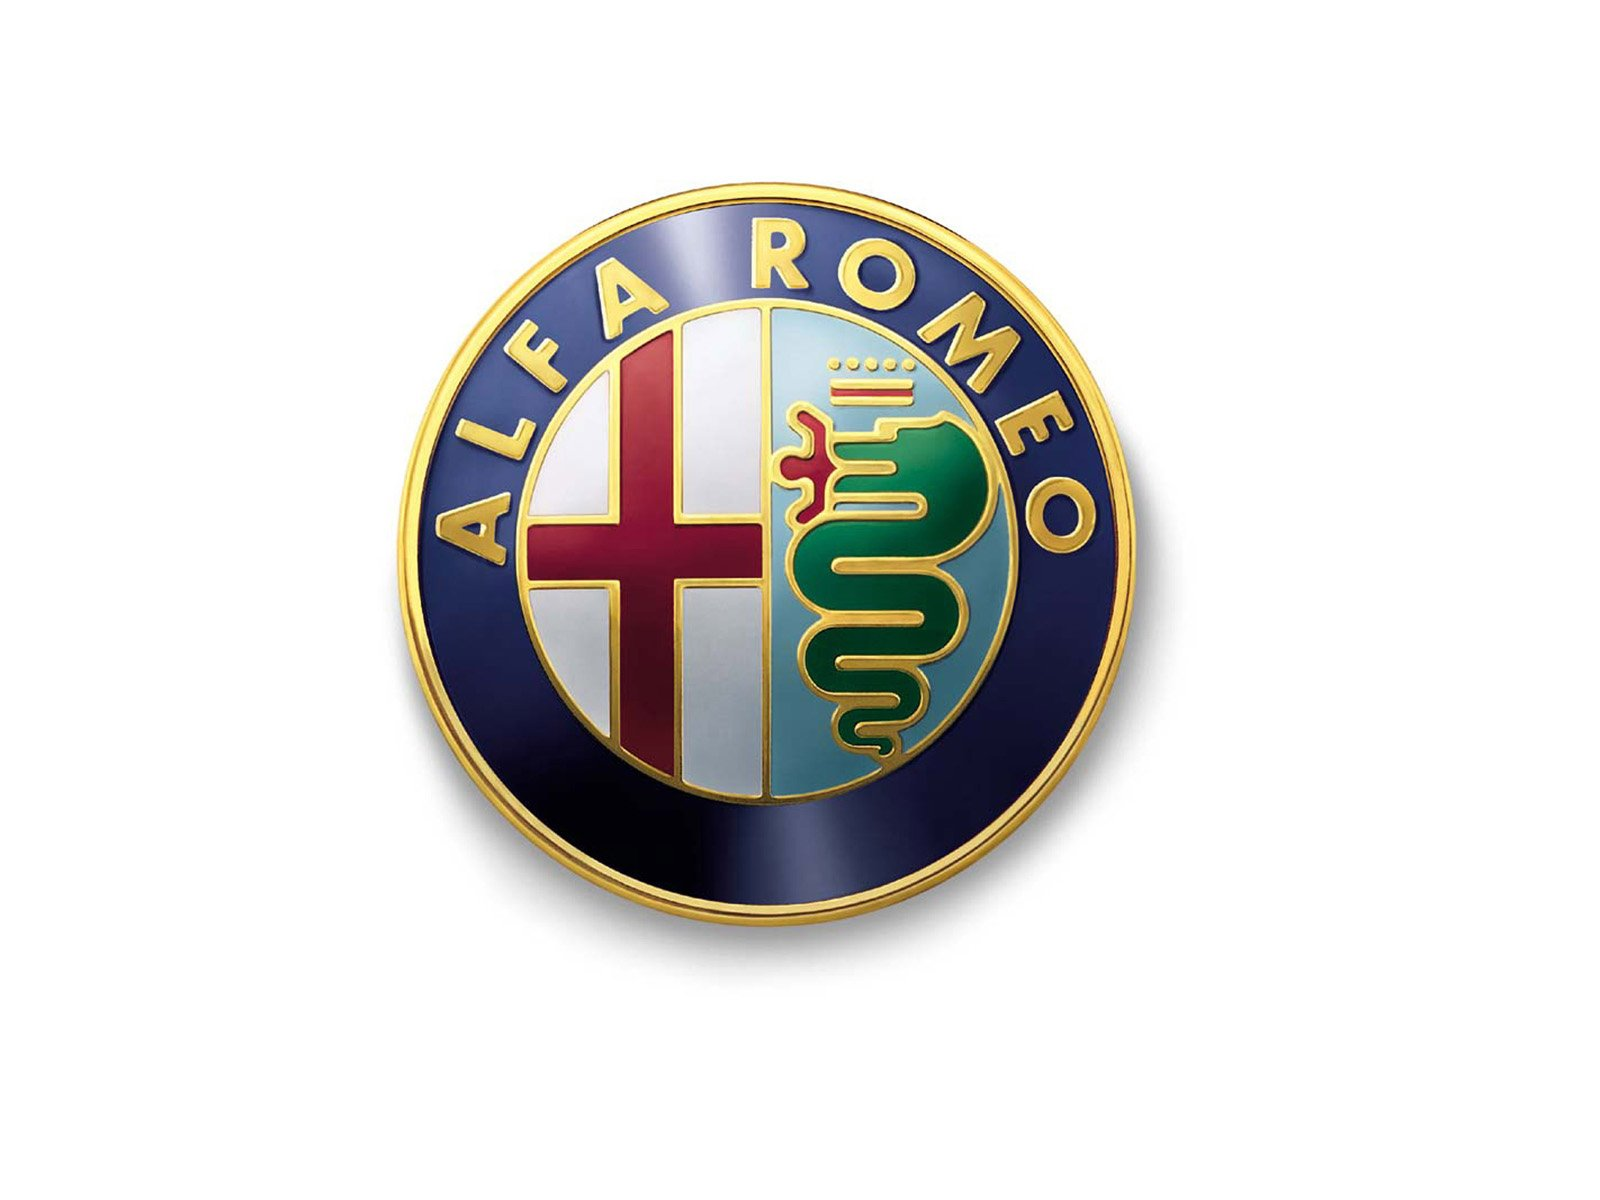 in loans alfa romeo logo. Black Bedroom Furniture Sets. Home Design Ideas